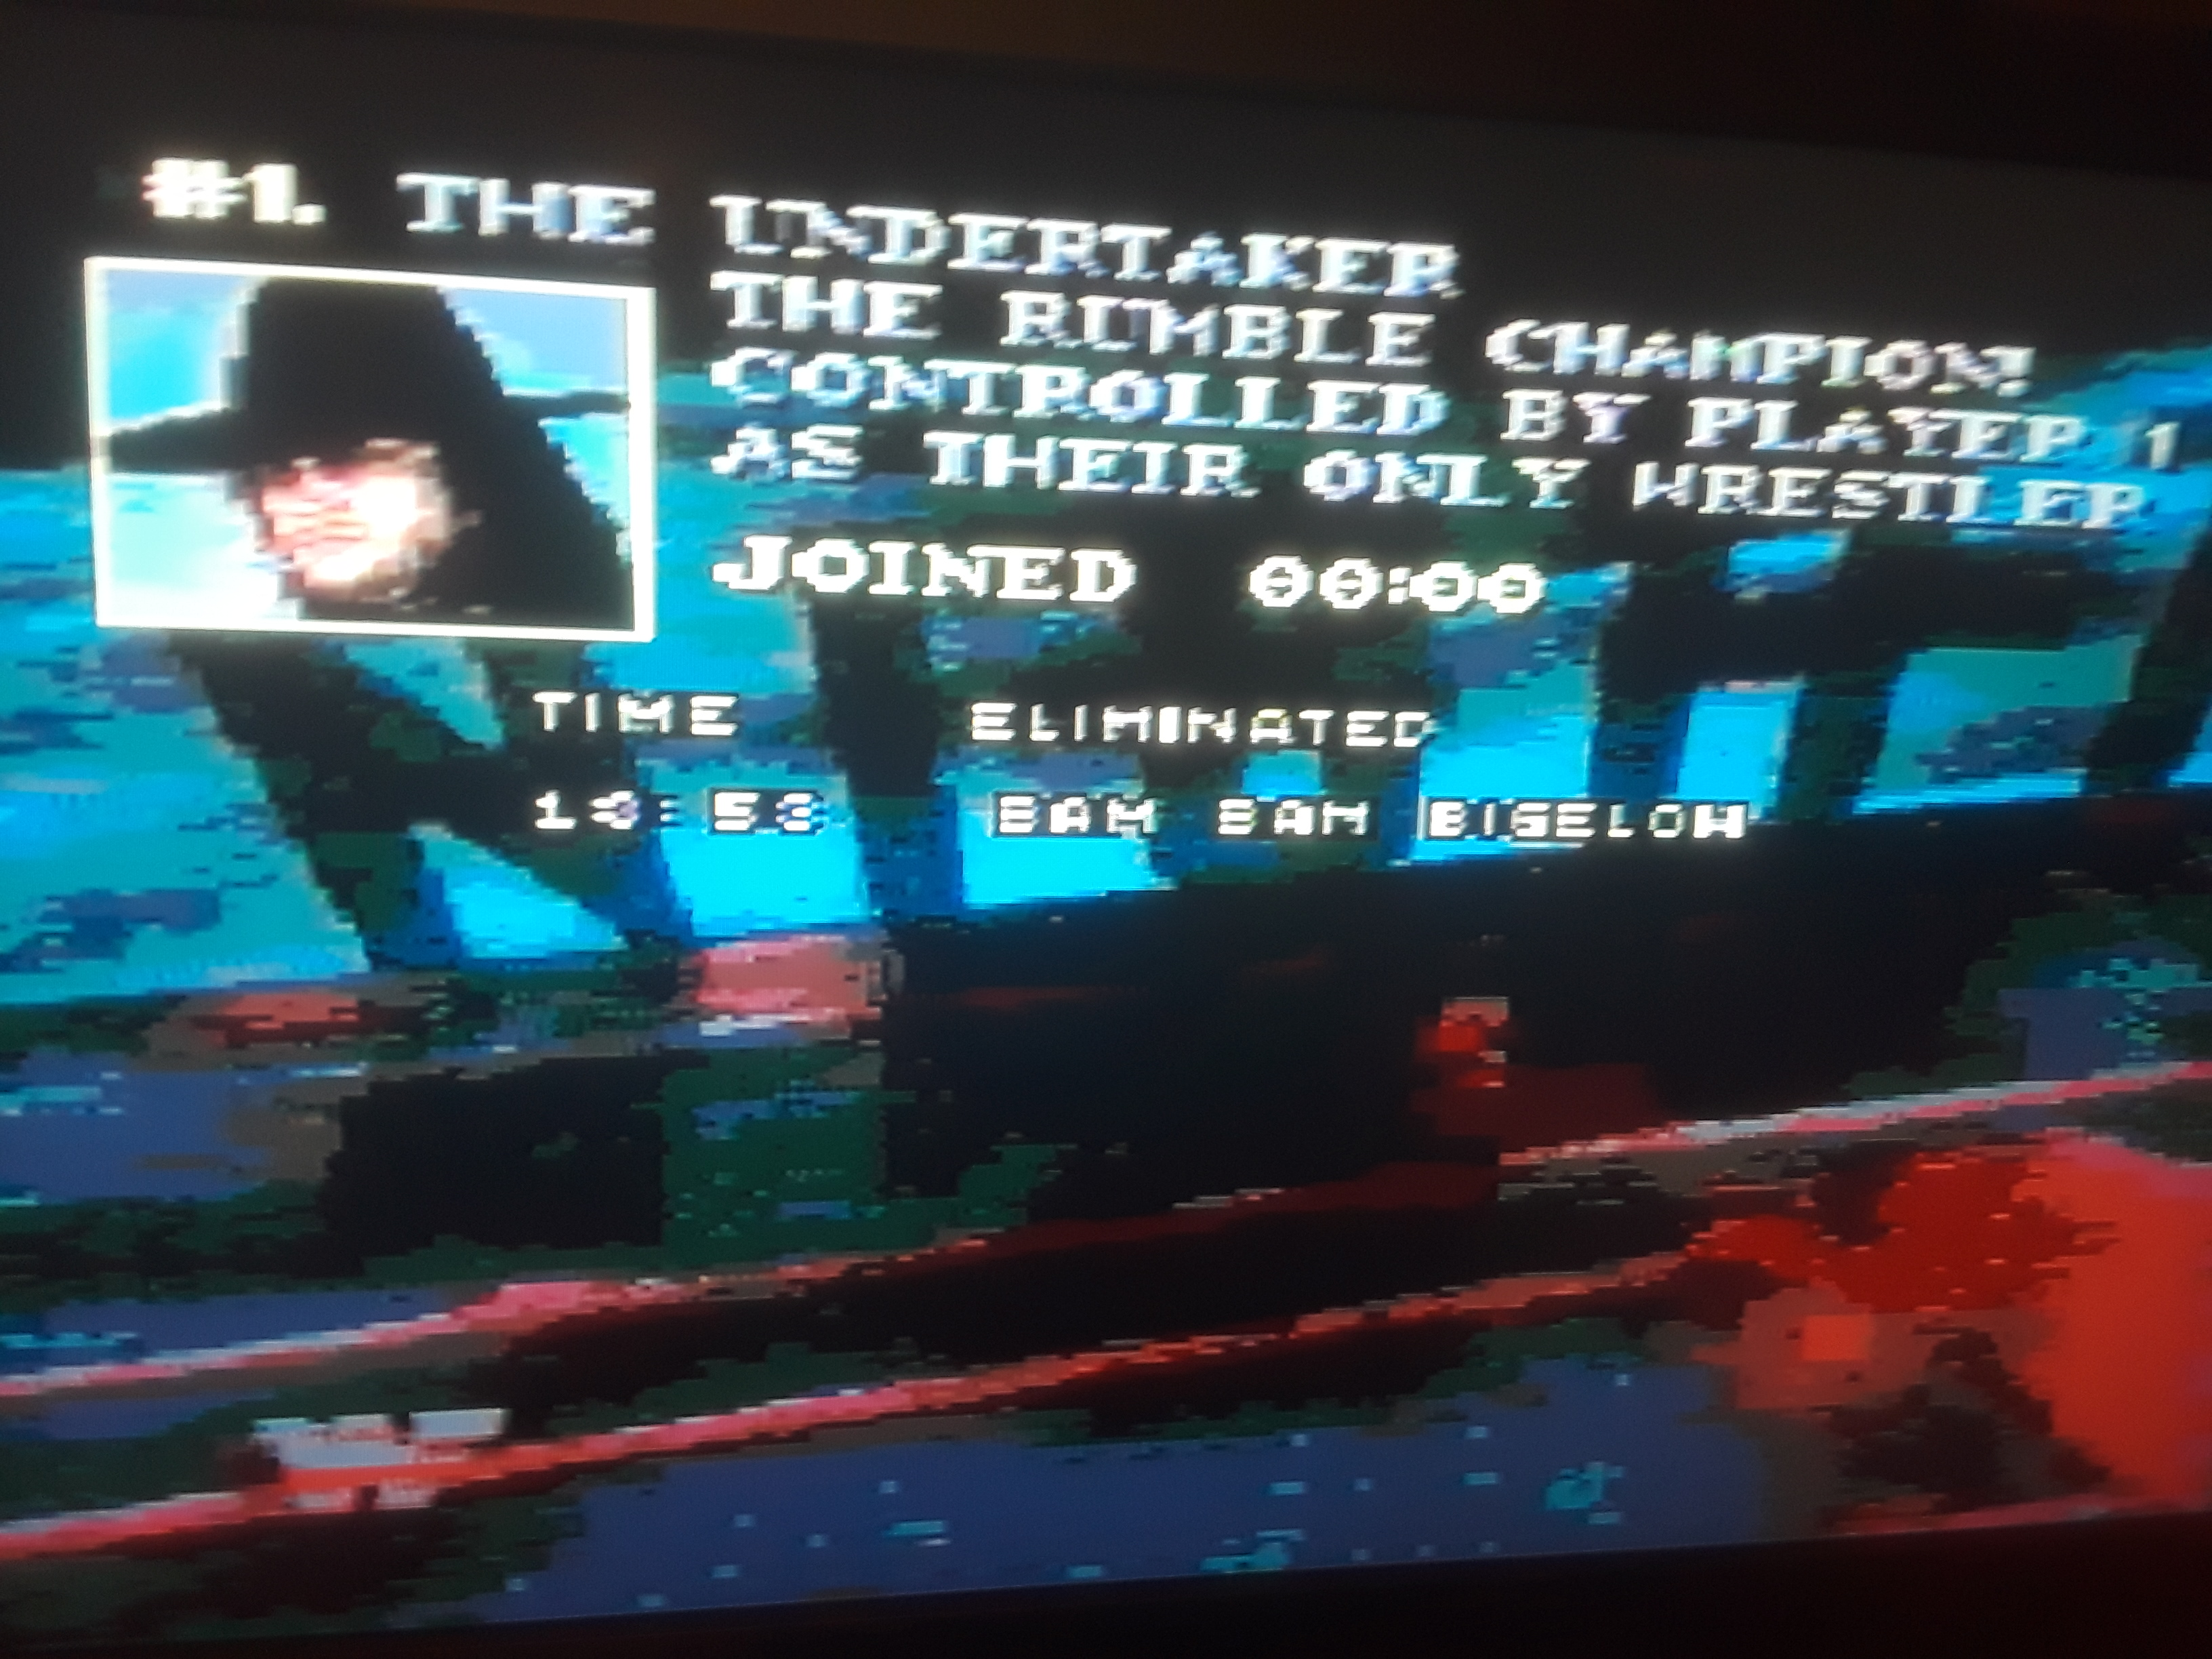 JML101582: WWF Raw [Royal Rumble] [Most Eliminations] (Sega Genesis / MegaDrive Emulated) 1 points on 2019-03-22 20:27:22